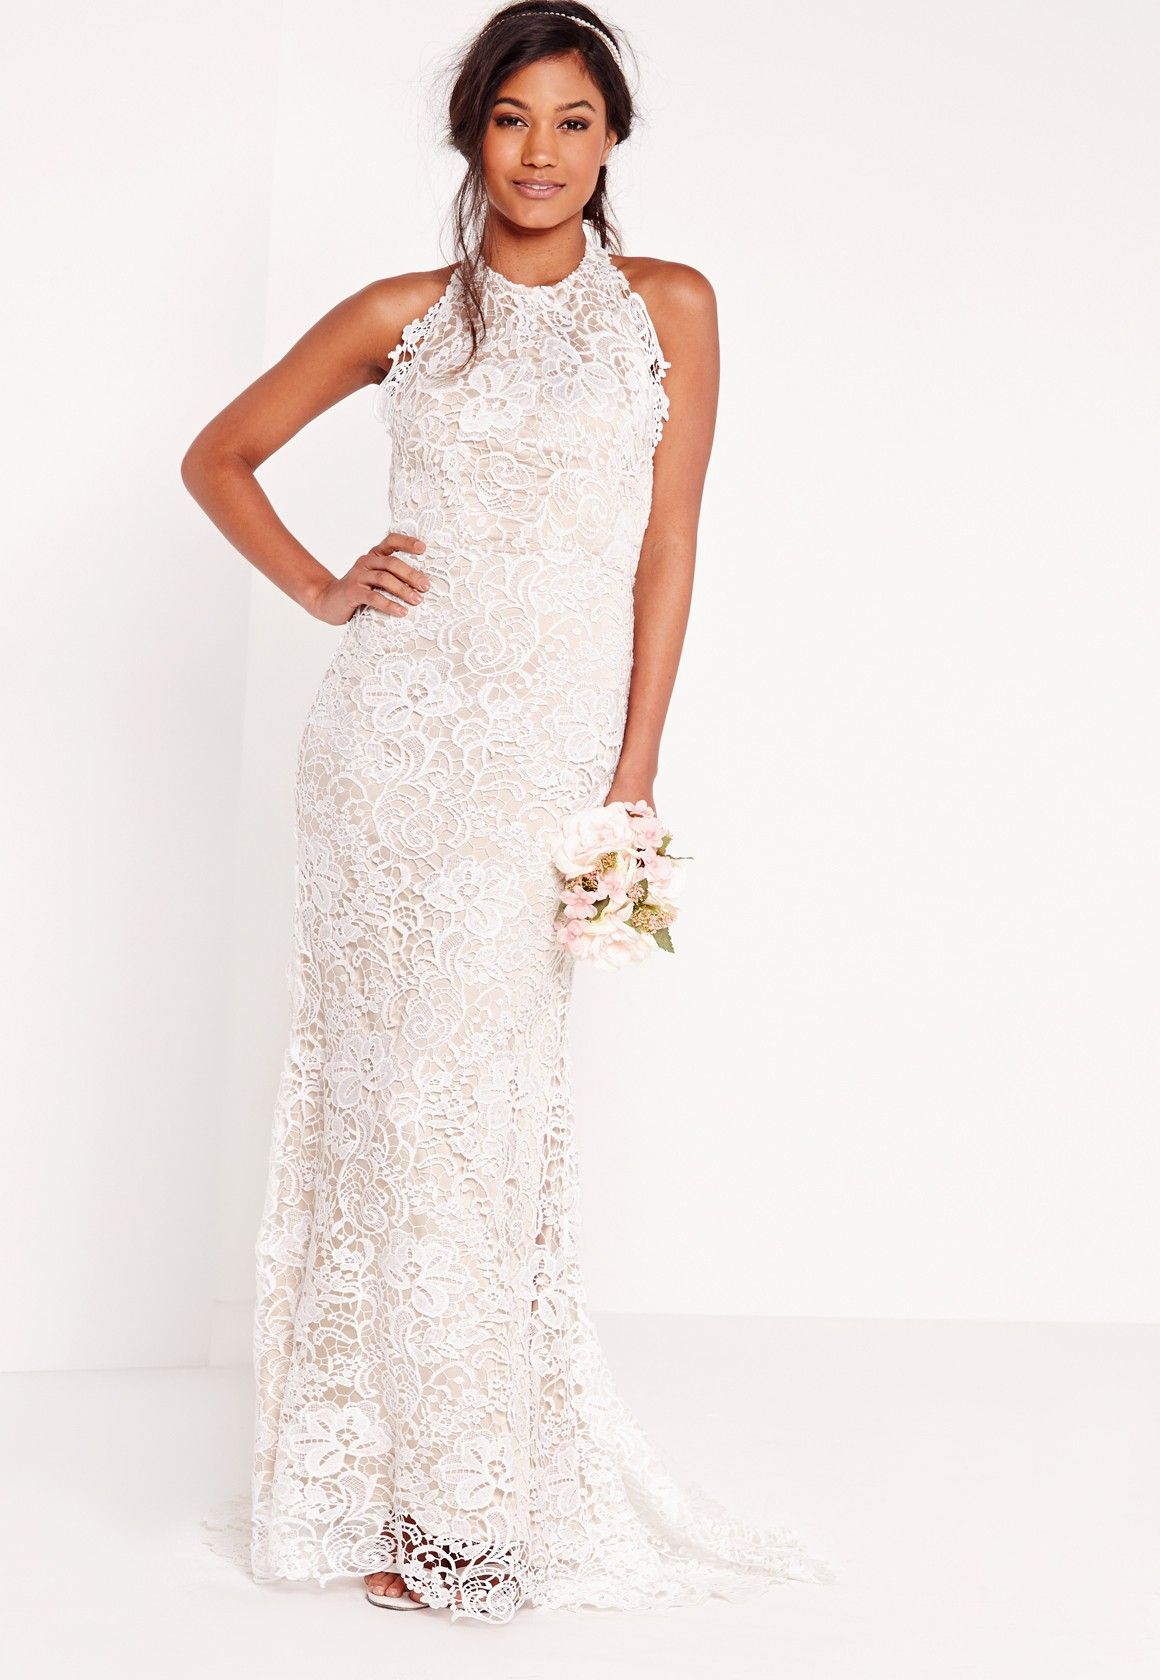 22 second wedding dresses to change into for your reception ...